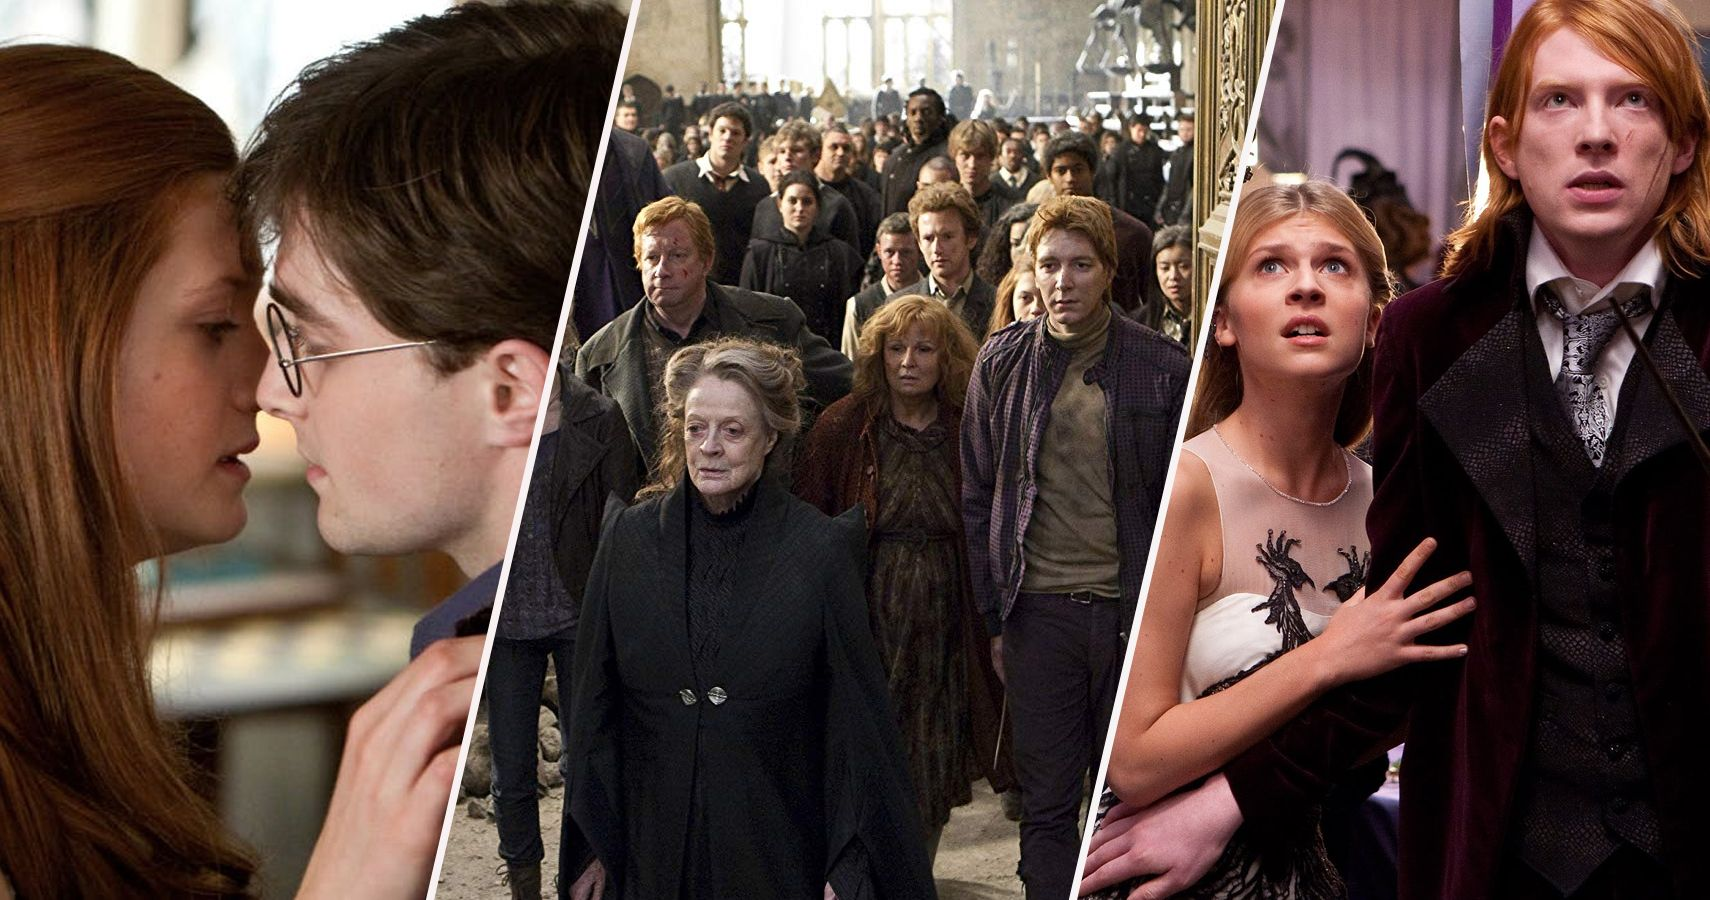 25 Things Only True Harry Potter Fans Know About The Weasley Family